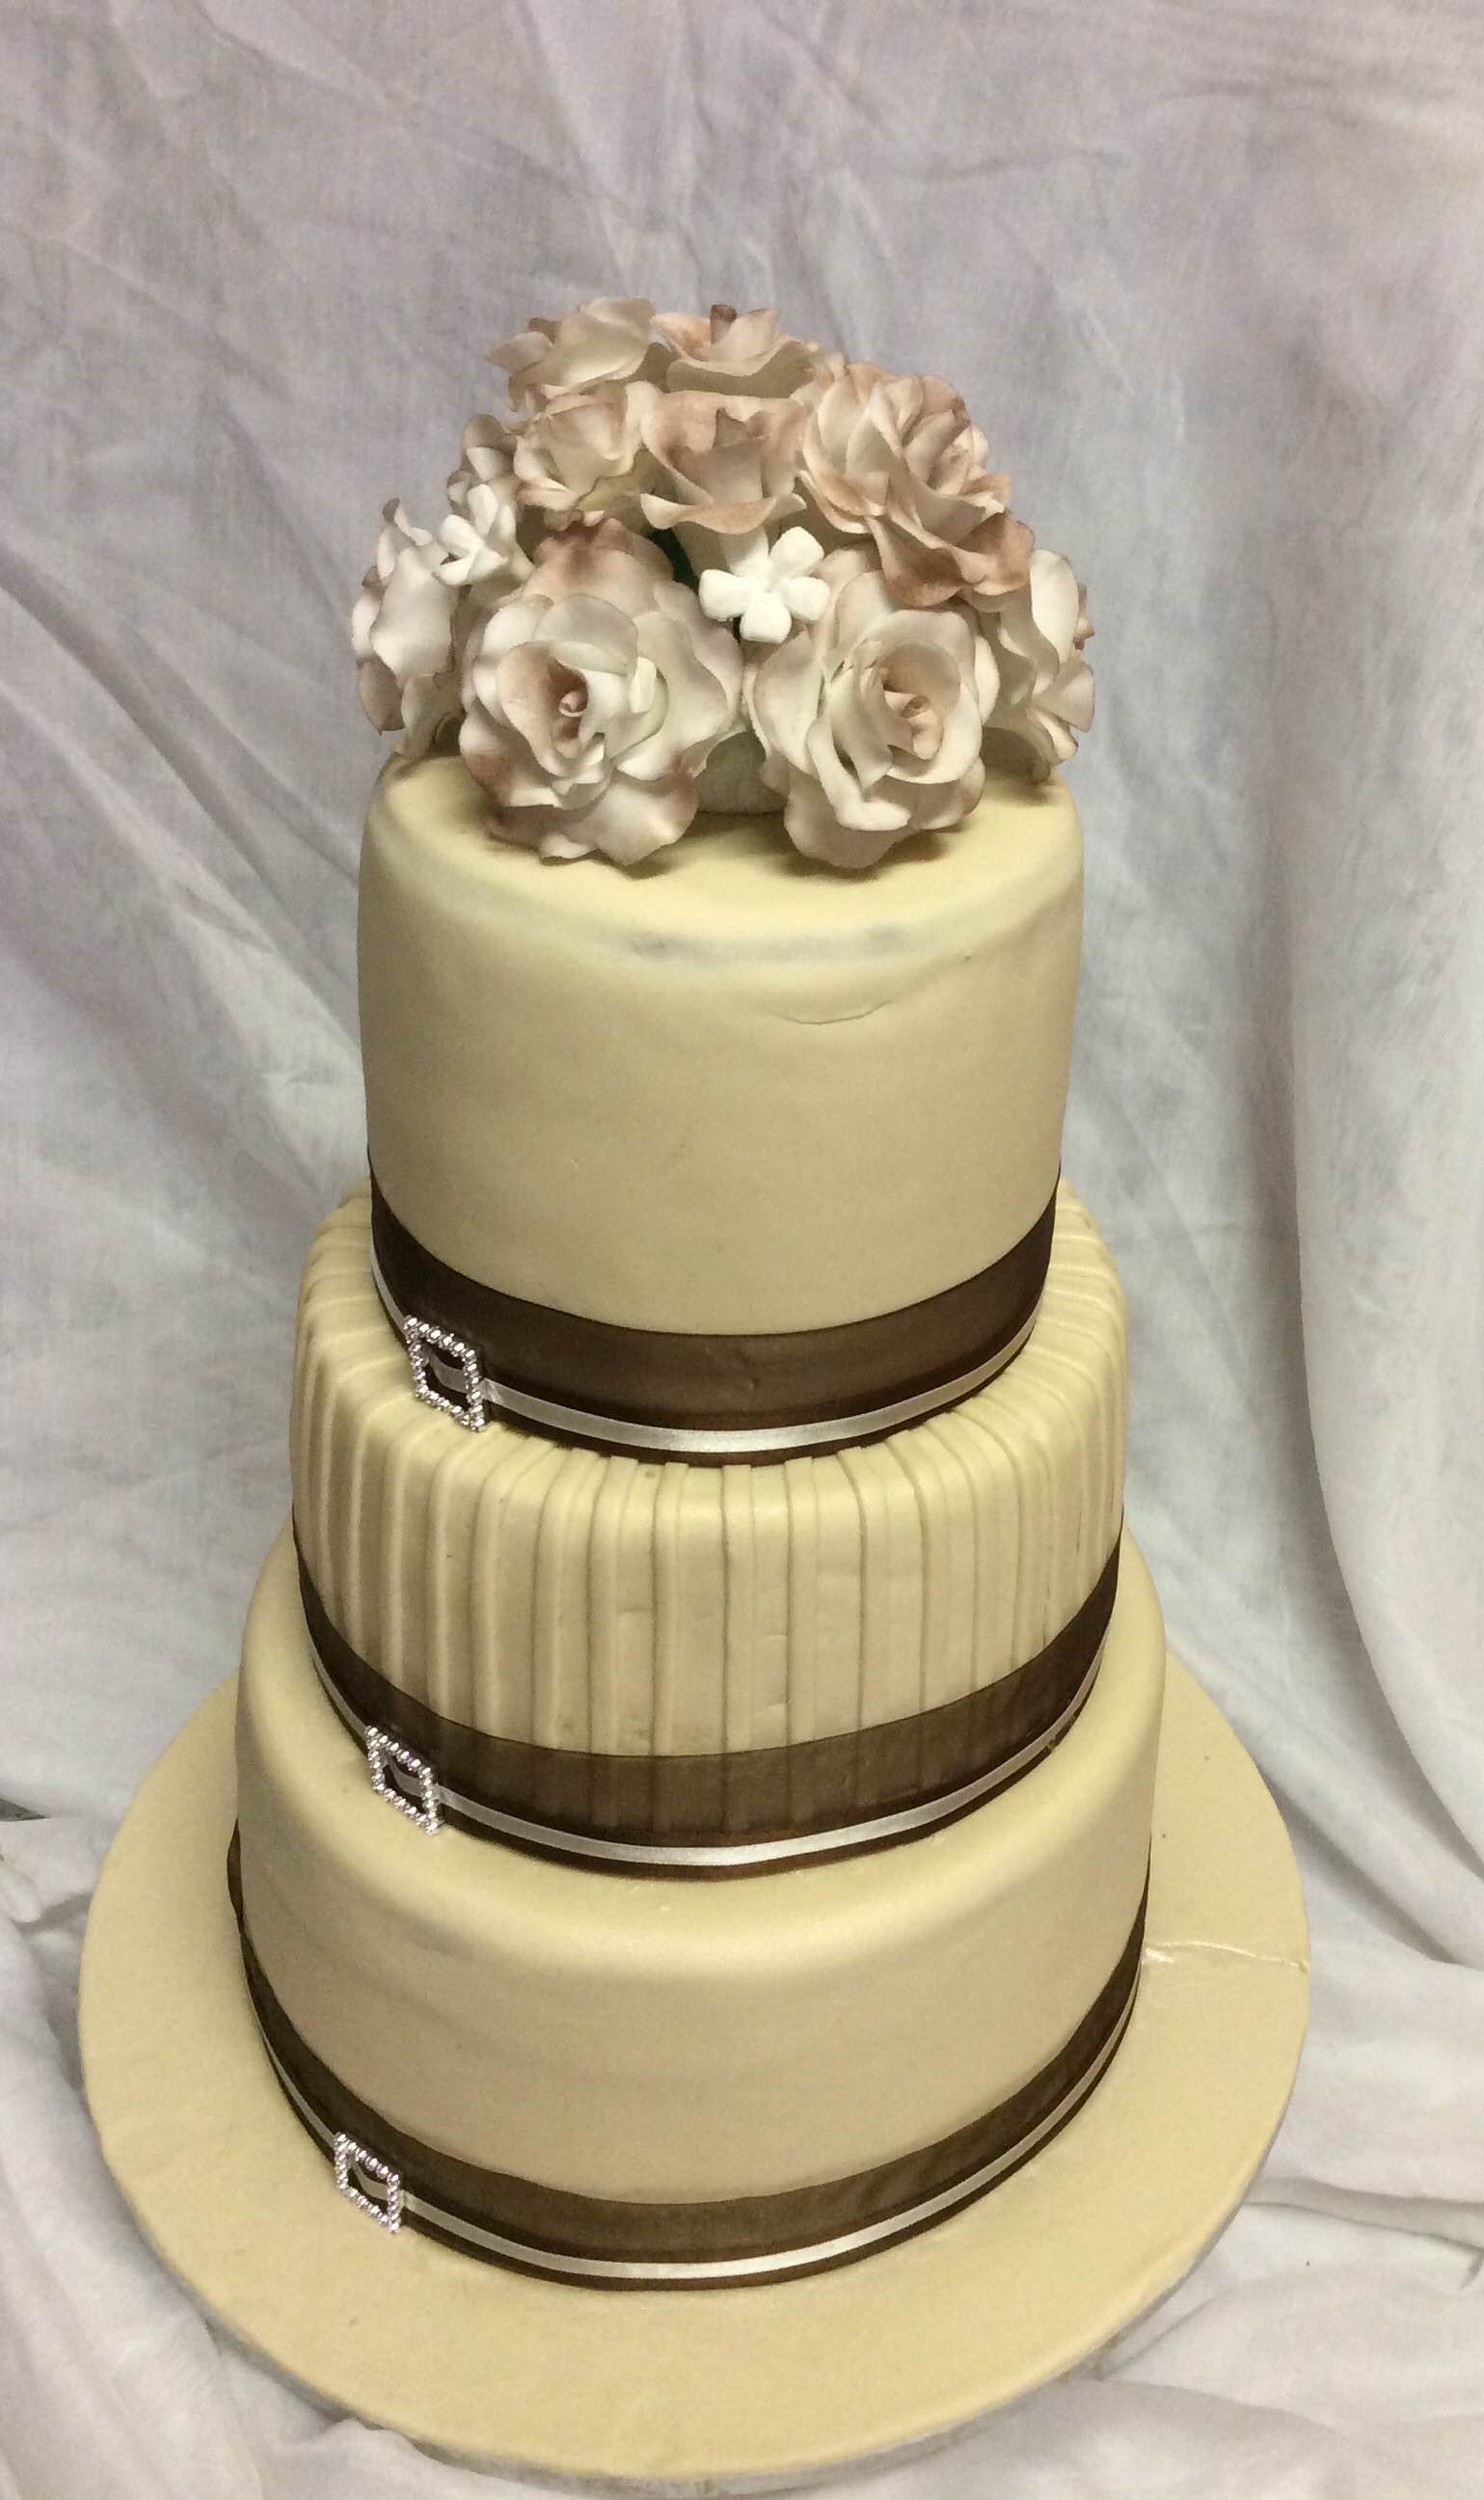 Wedding Cakes | Baked by Nataleen